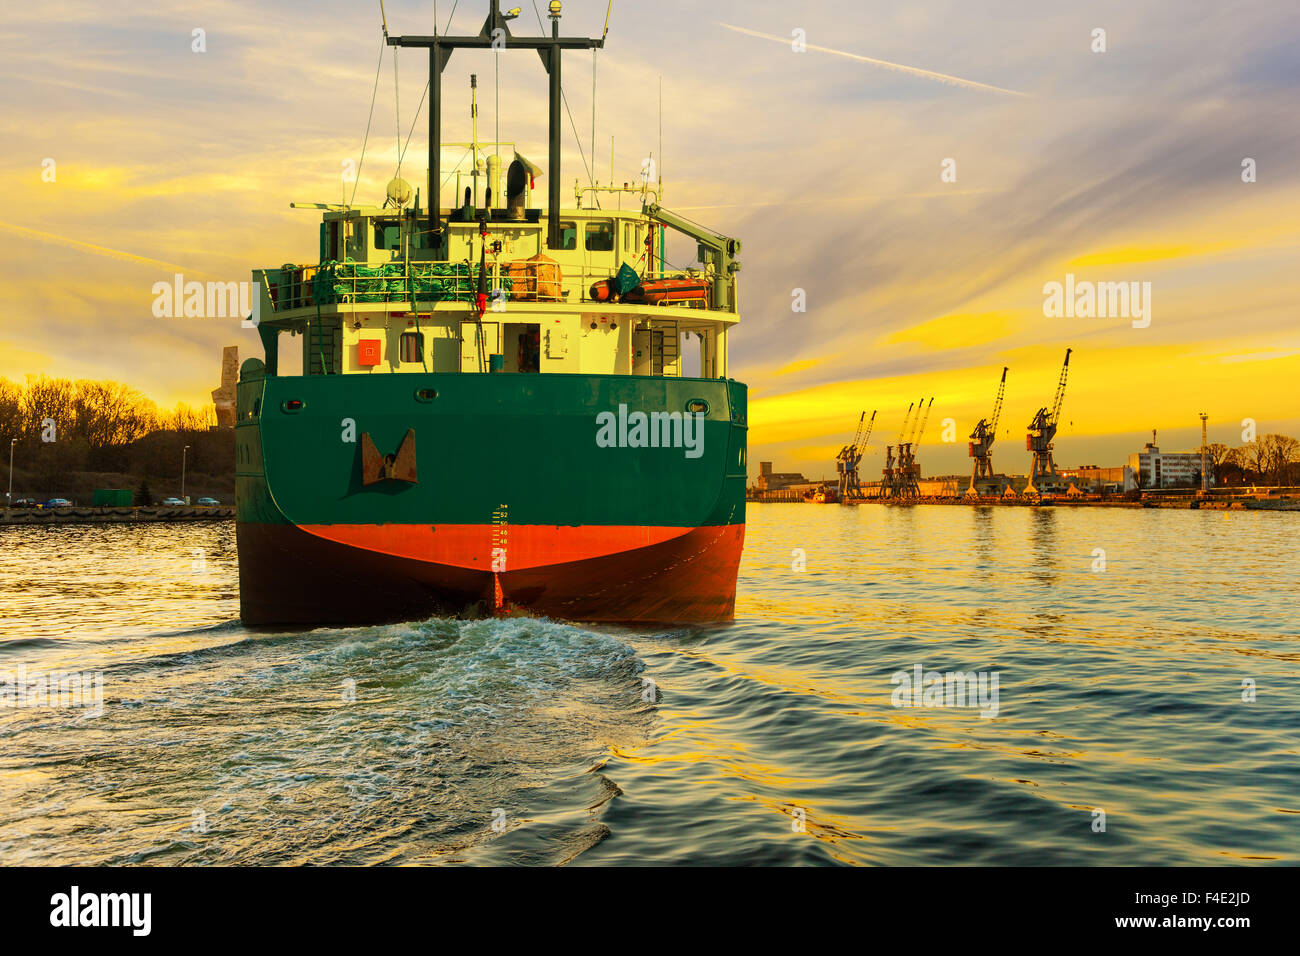 Cargo ship at sunset coming to port. - Stock Image